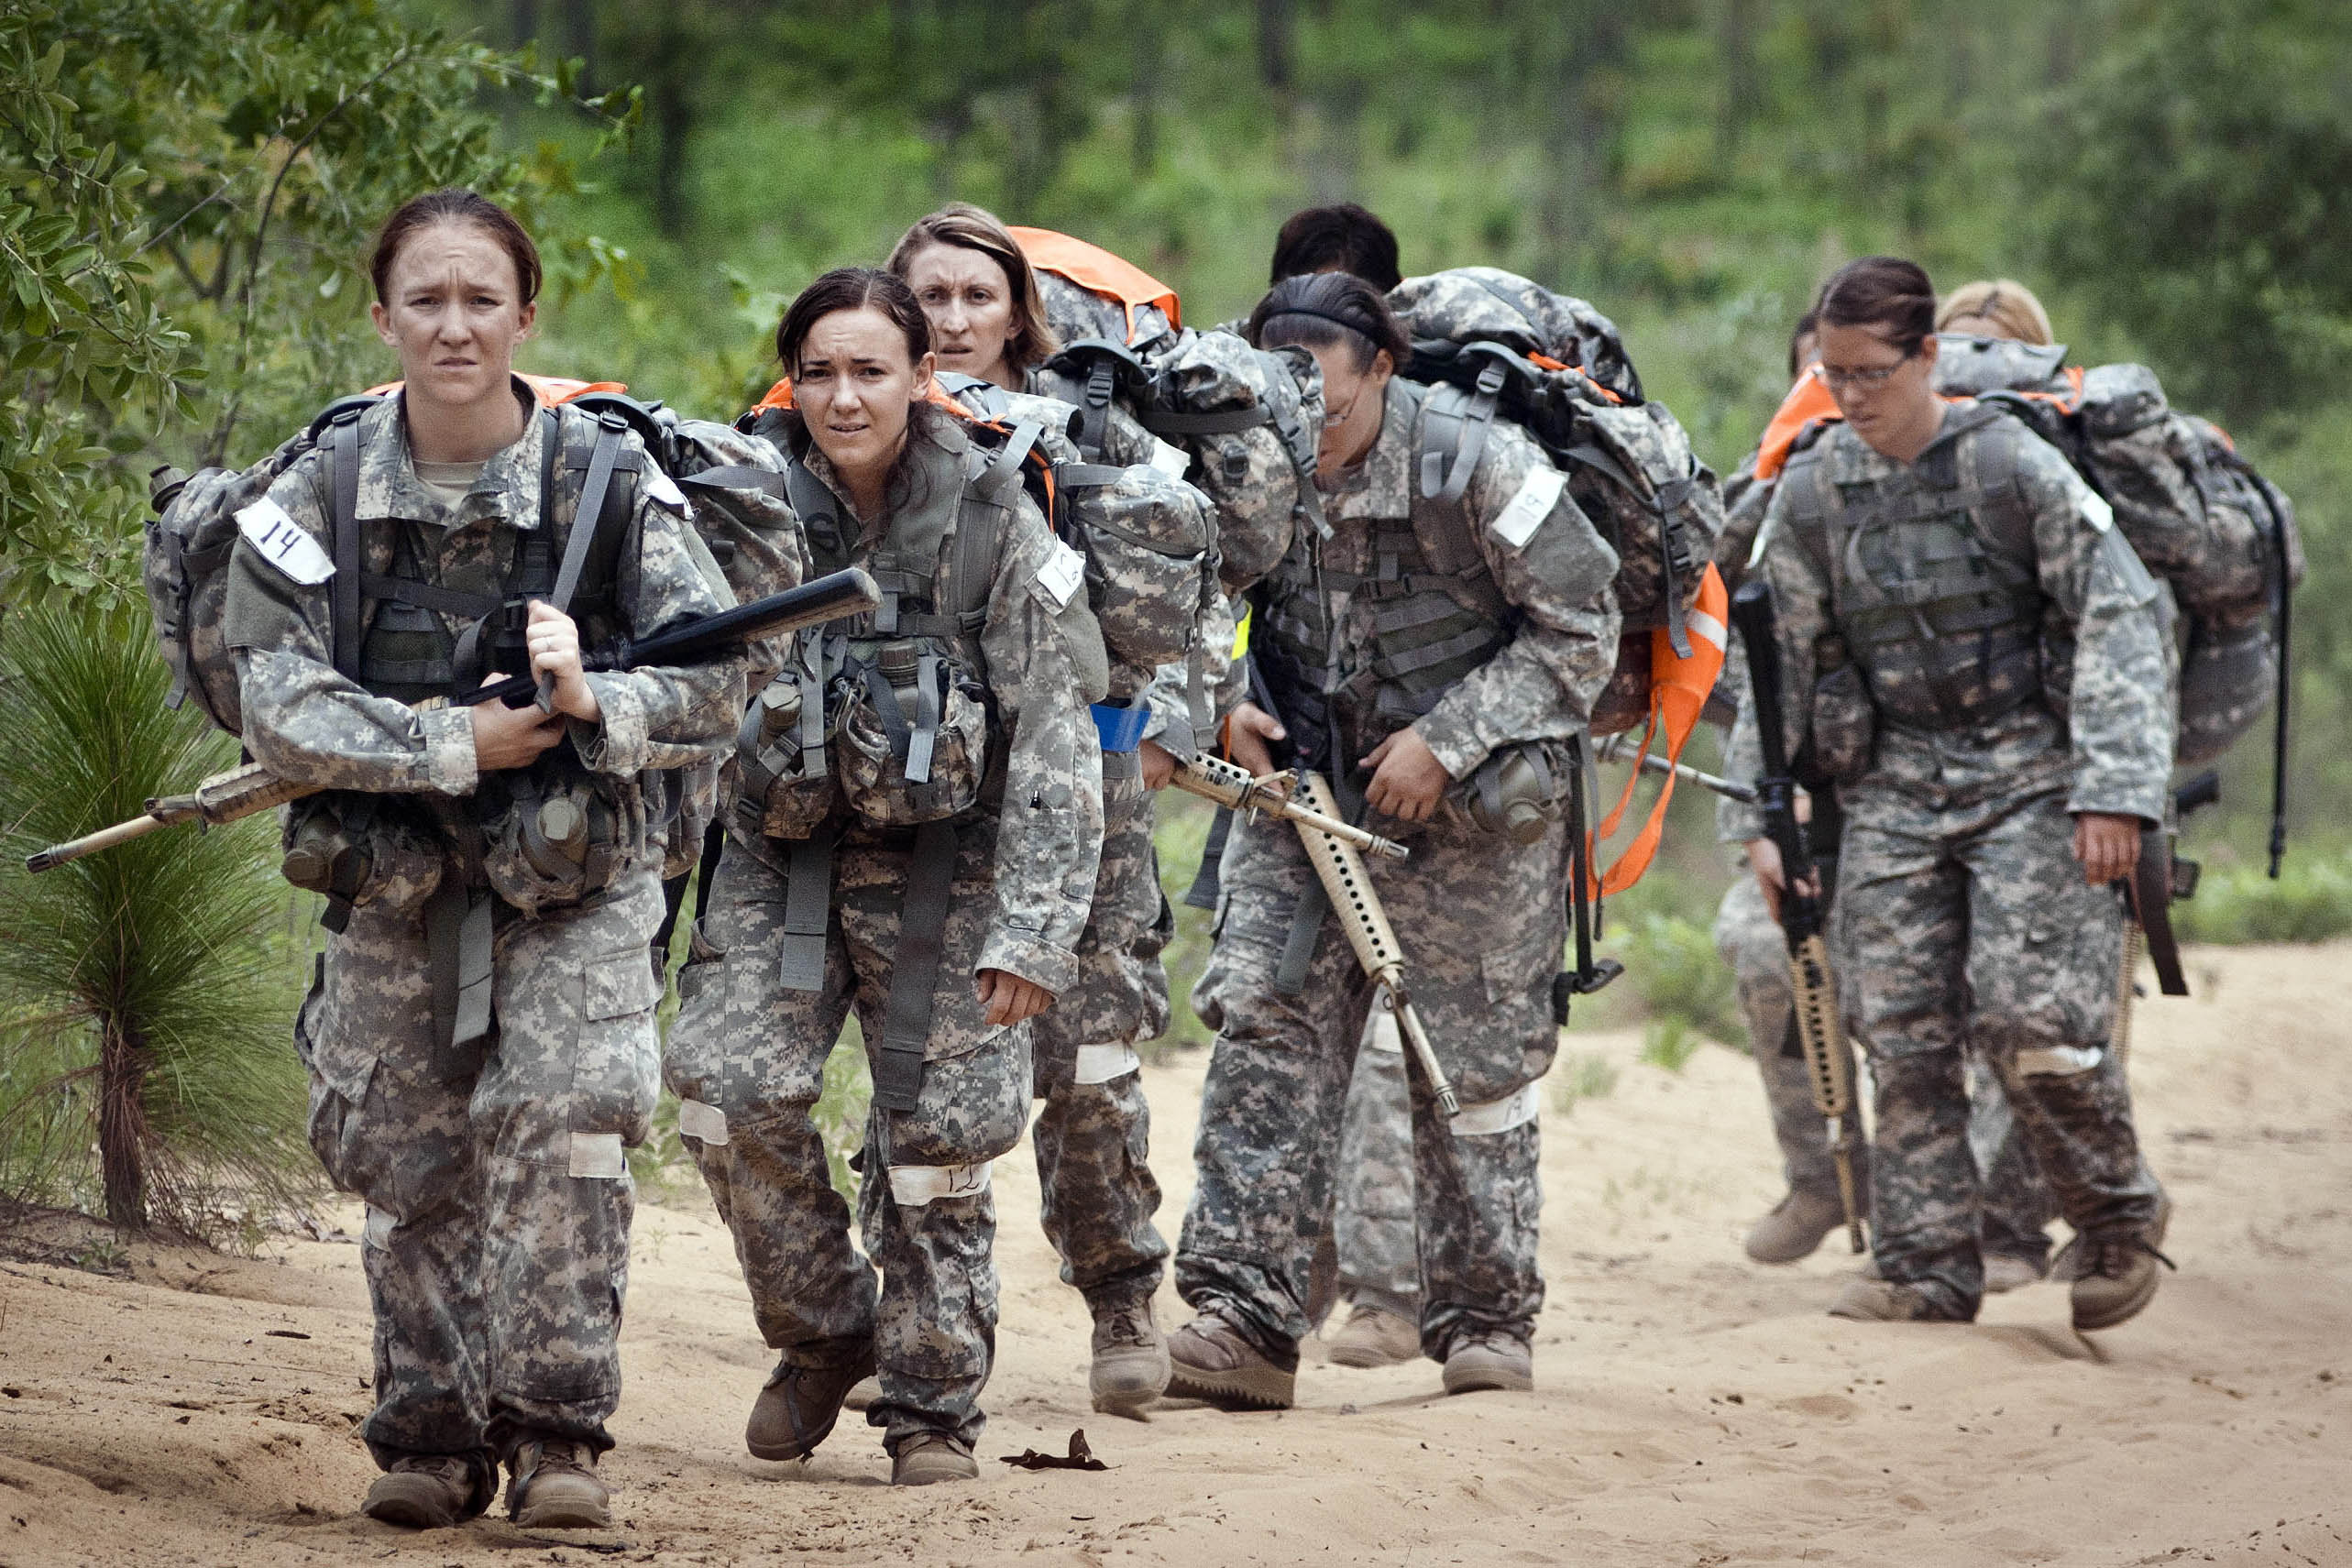 Female army soldiers